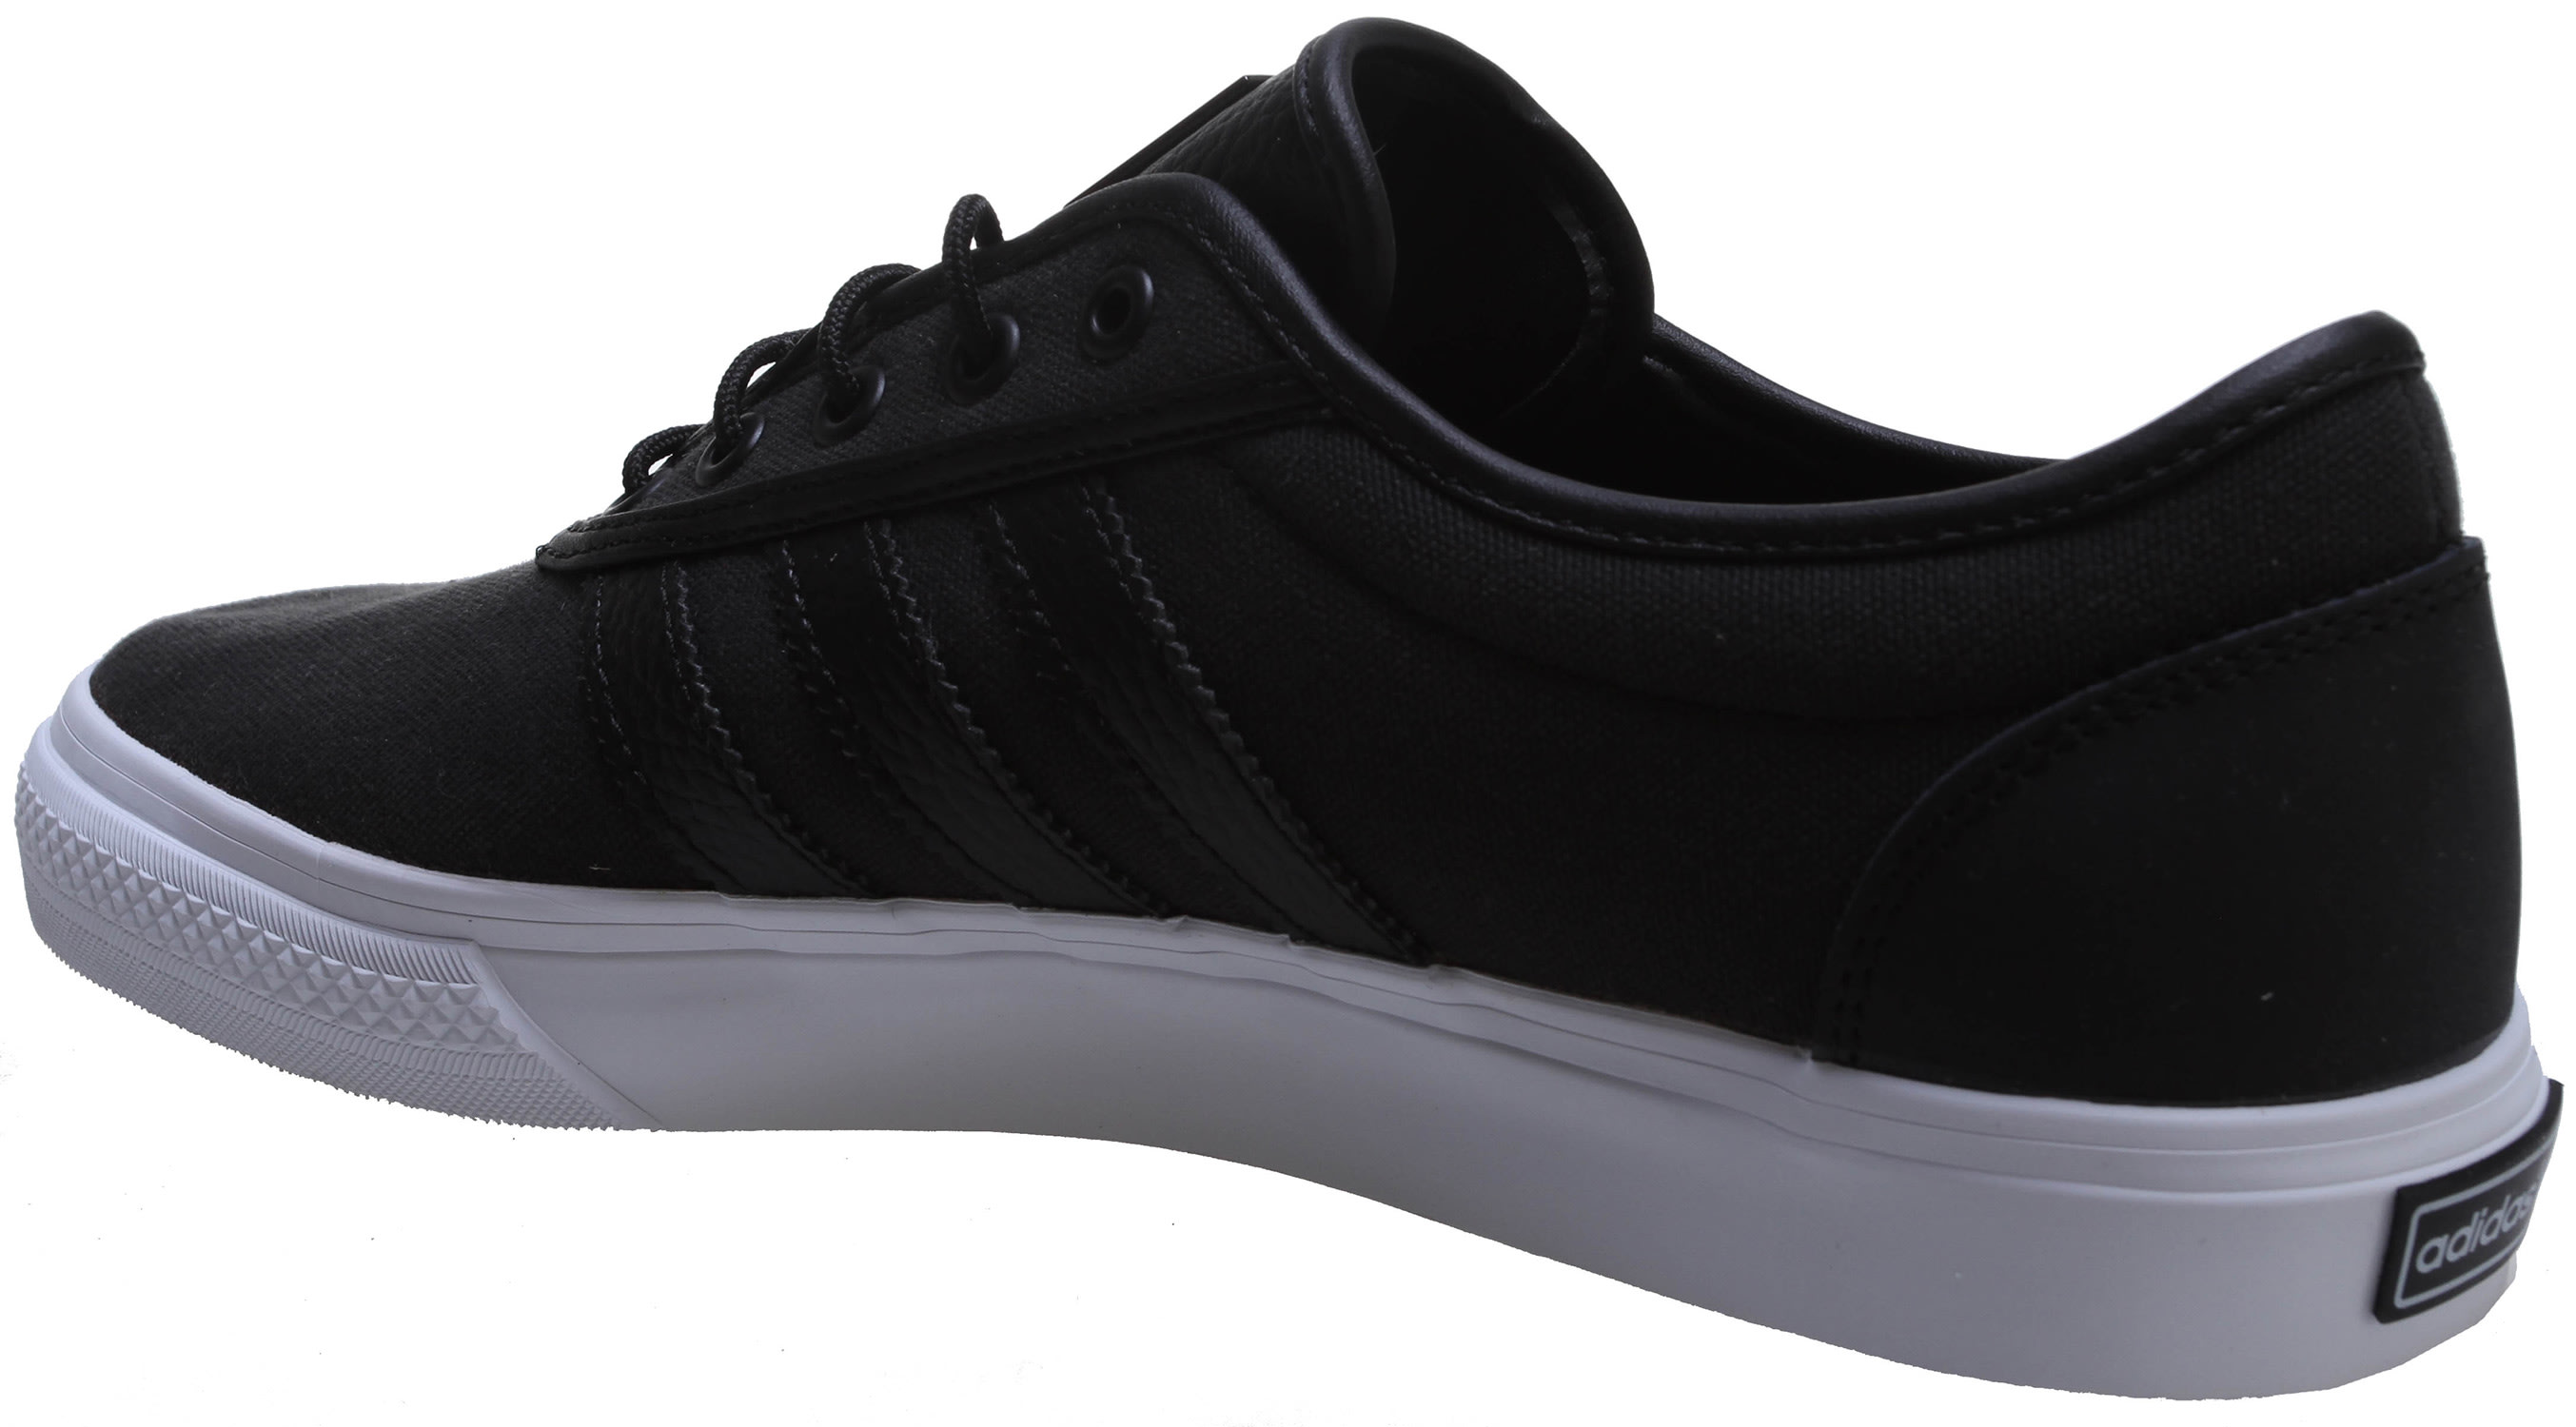 newest 66ac5 16267 Adidas Adi-Ease Classified Skate Shoes - thumbnail 3